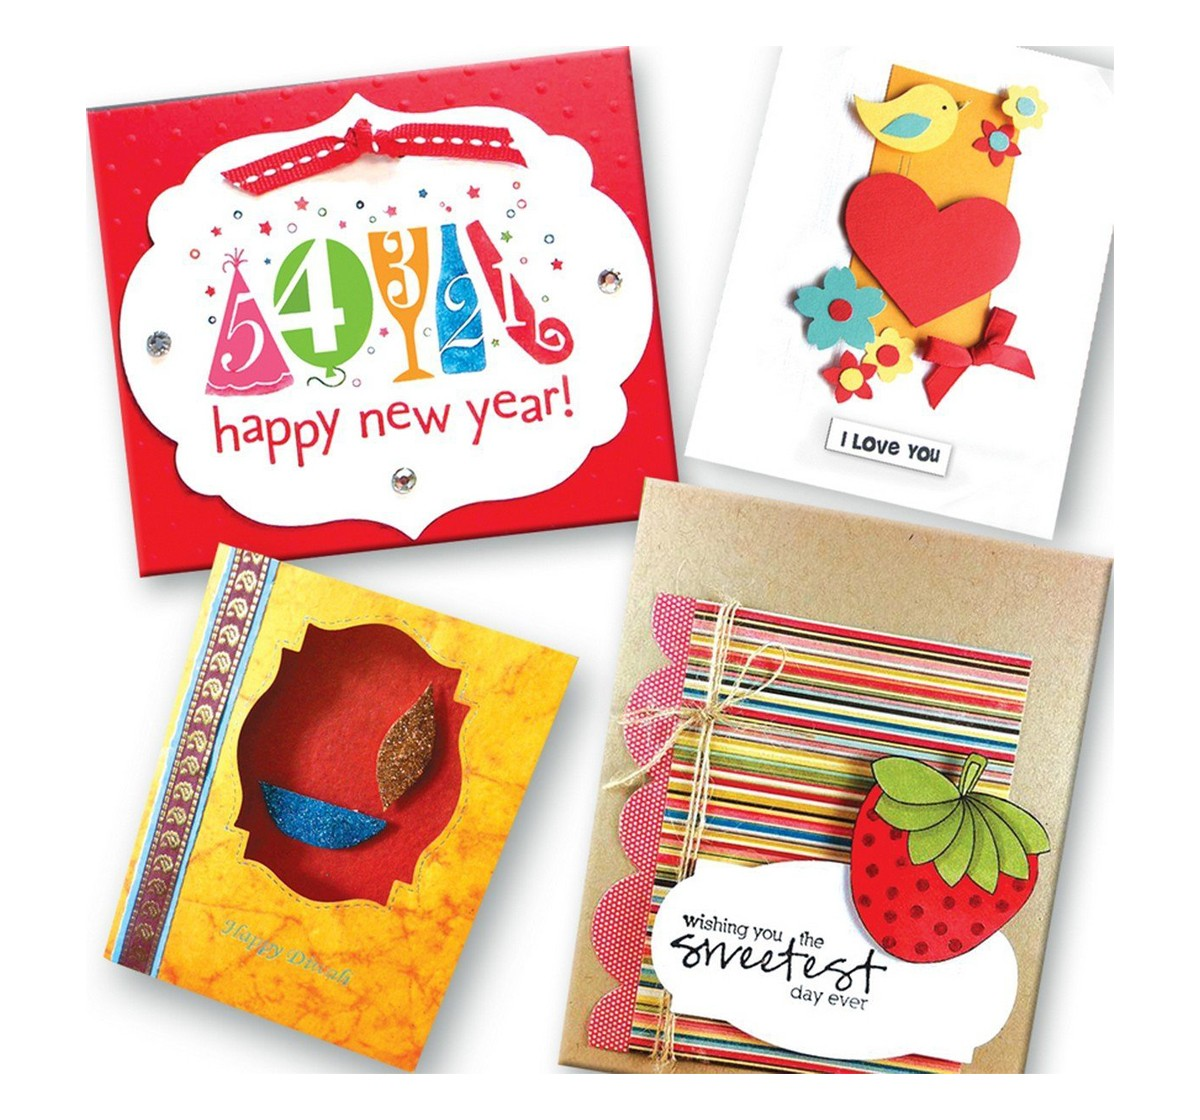 Toy Kraft Celebrate With Greeting Cards DIY Art & Craft Kits for Kids age 5Y+